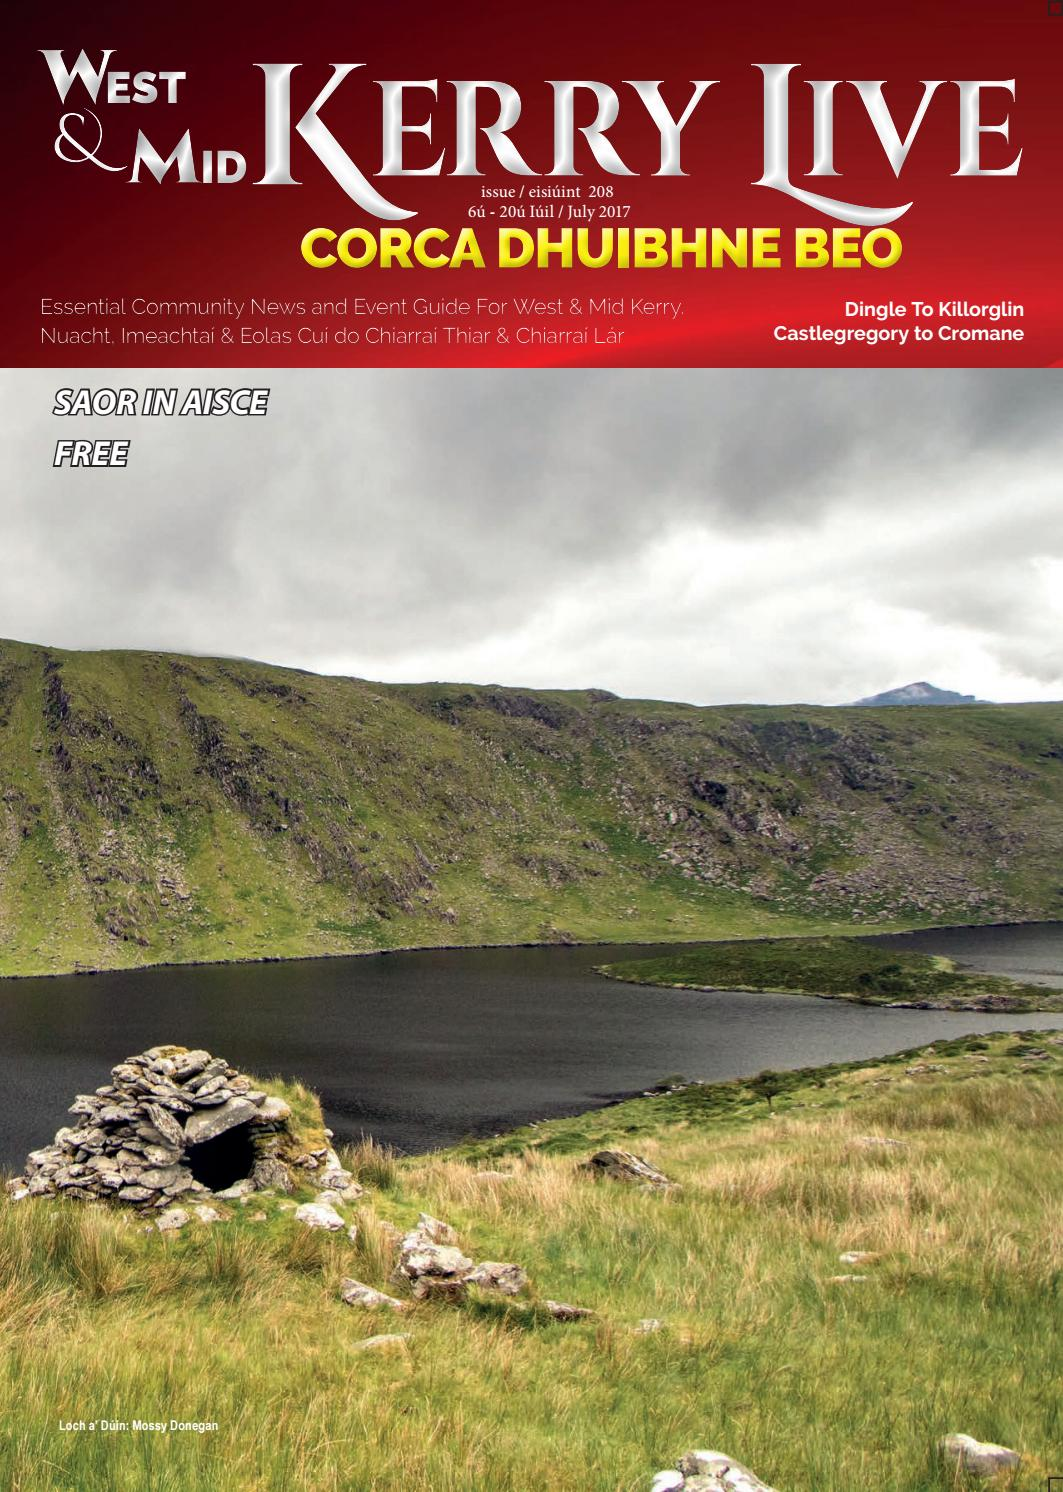 West Mid Kerry Live Issue 208 By Issuu Blue Sea Systems Ac Aseries Circuit Breaker Lockout Slide